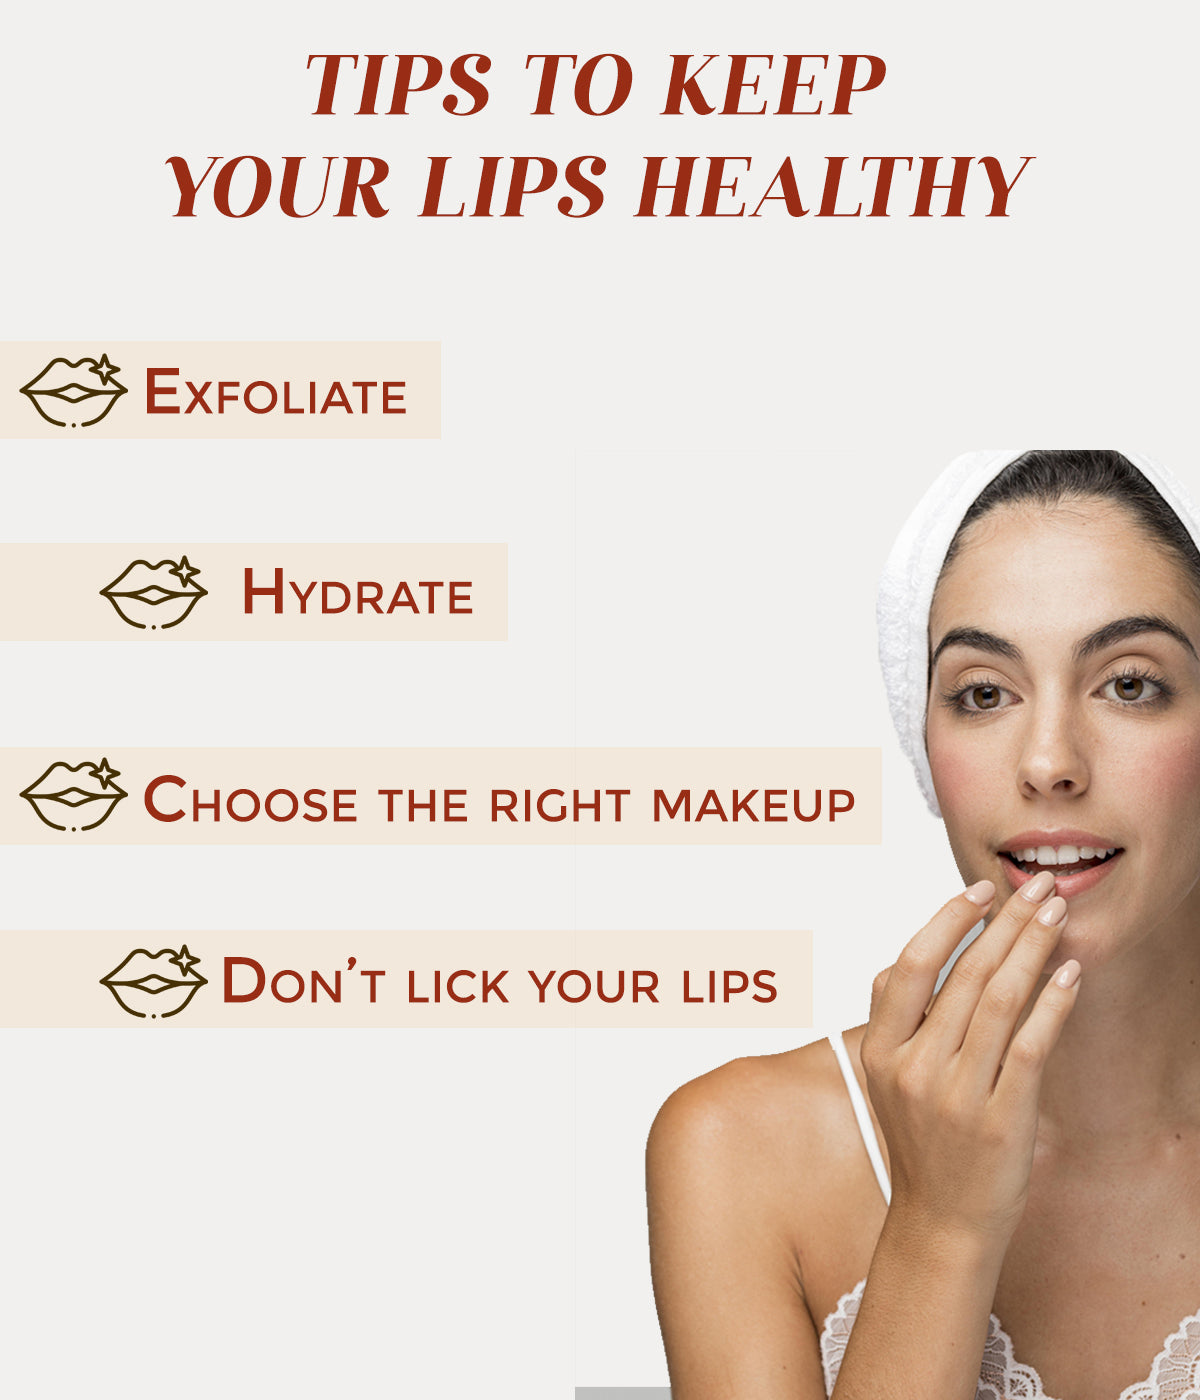 This is an image of tips to keep in mind to keep your lips healthy